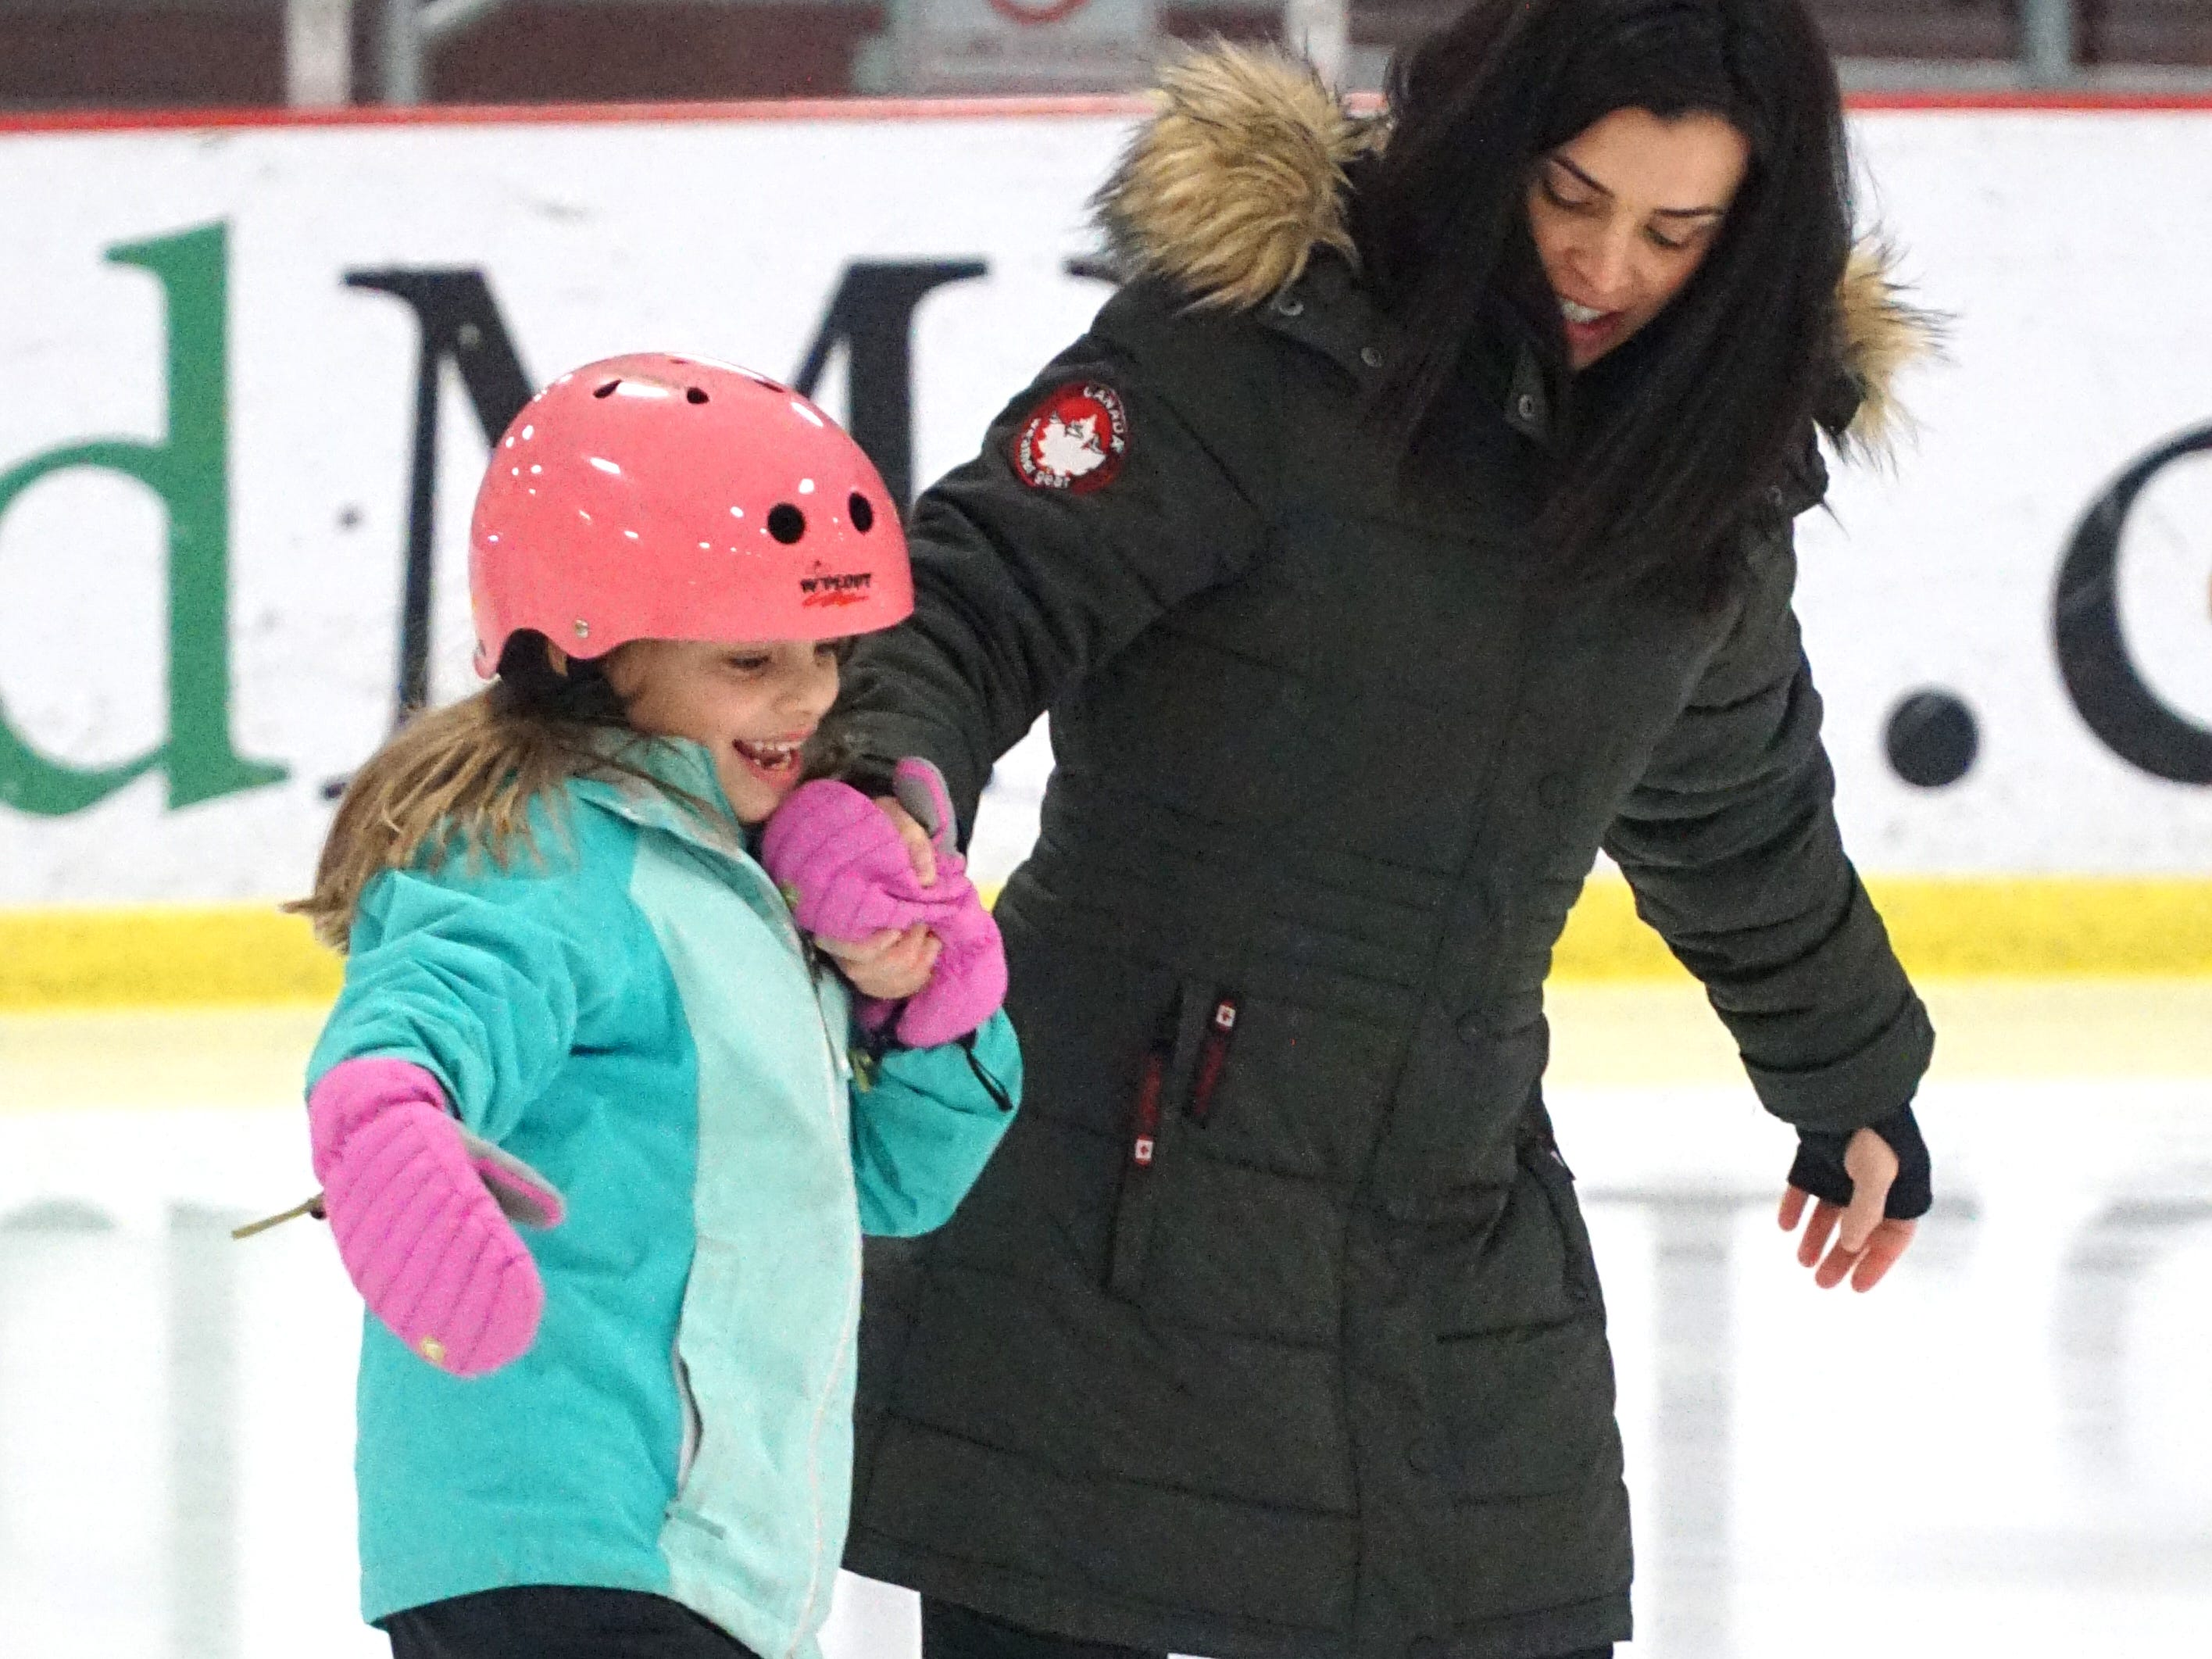 Kristin Sowle helps her daughter Lucy, 8, across the surface at the Birmingham Ice Arena on Feb. 22.